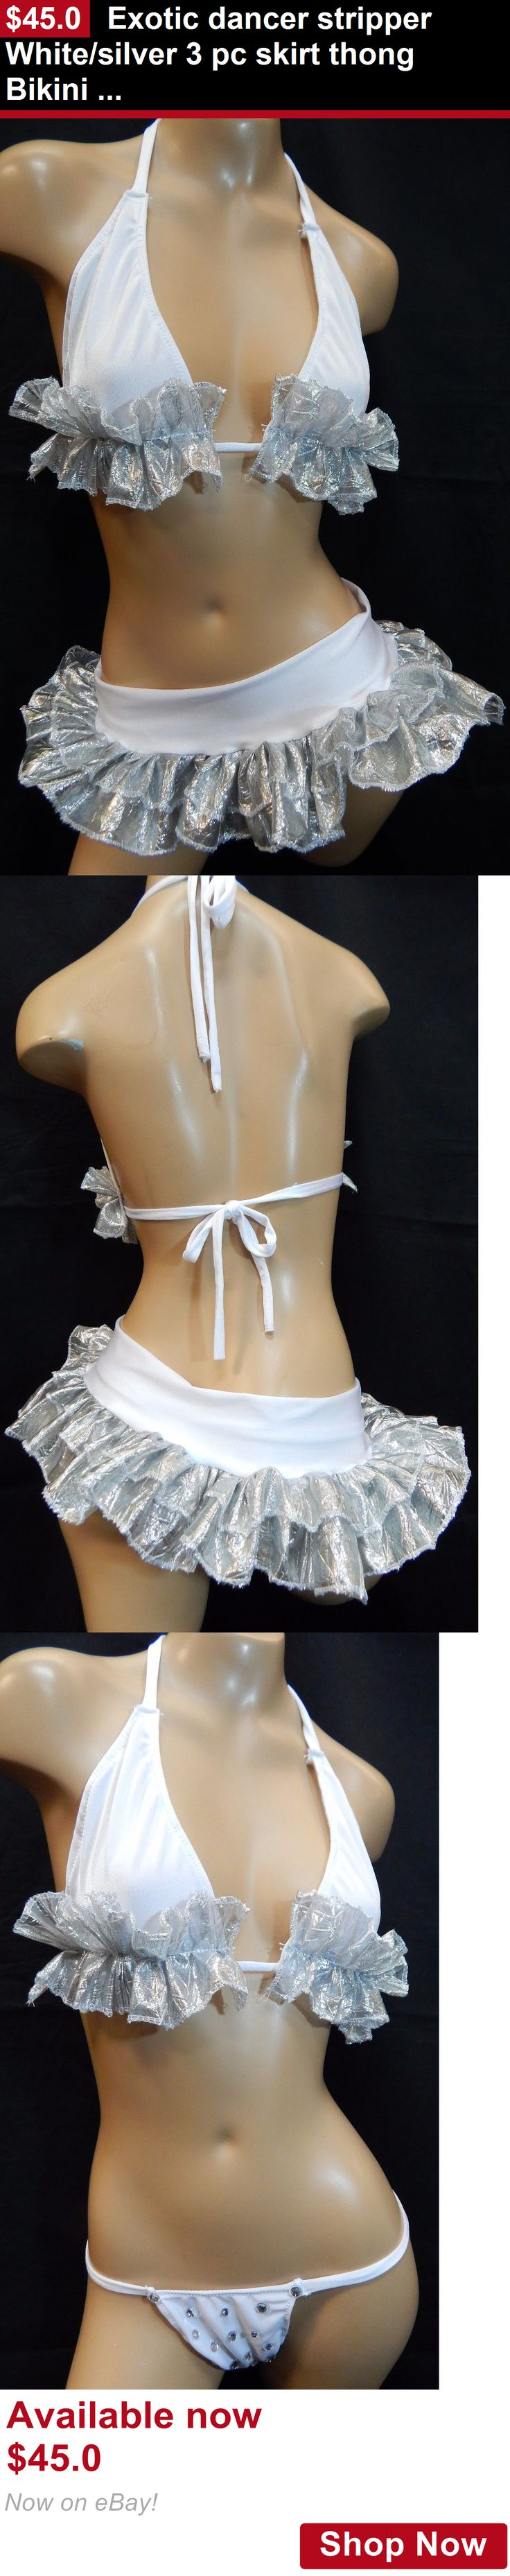 Dancewear: Exotic Dancer Stripper White/Silver 3 Pc Skirt Thong Bikini Set-Dancewear Women BUY IT NOW ONLY: $45.0